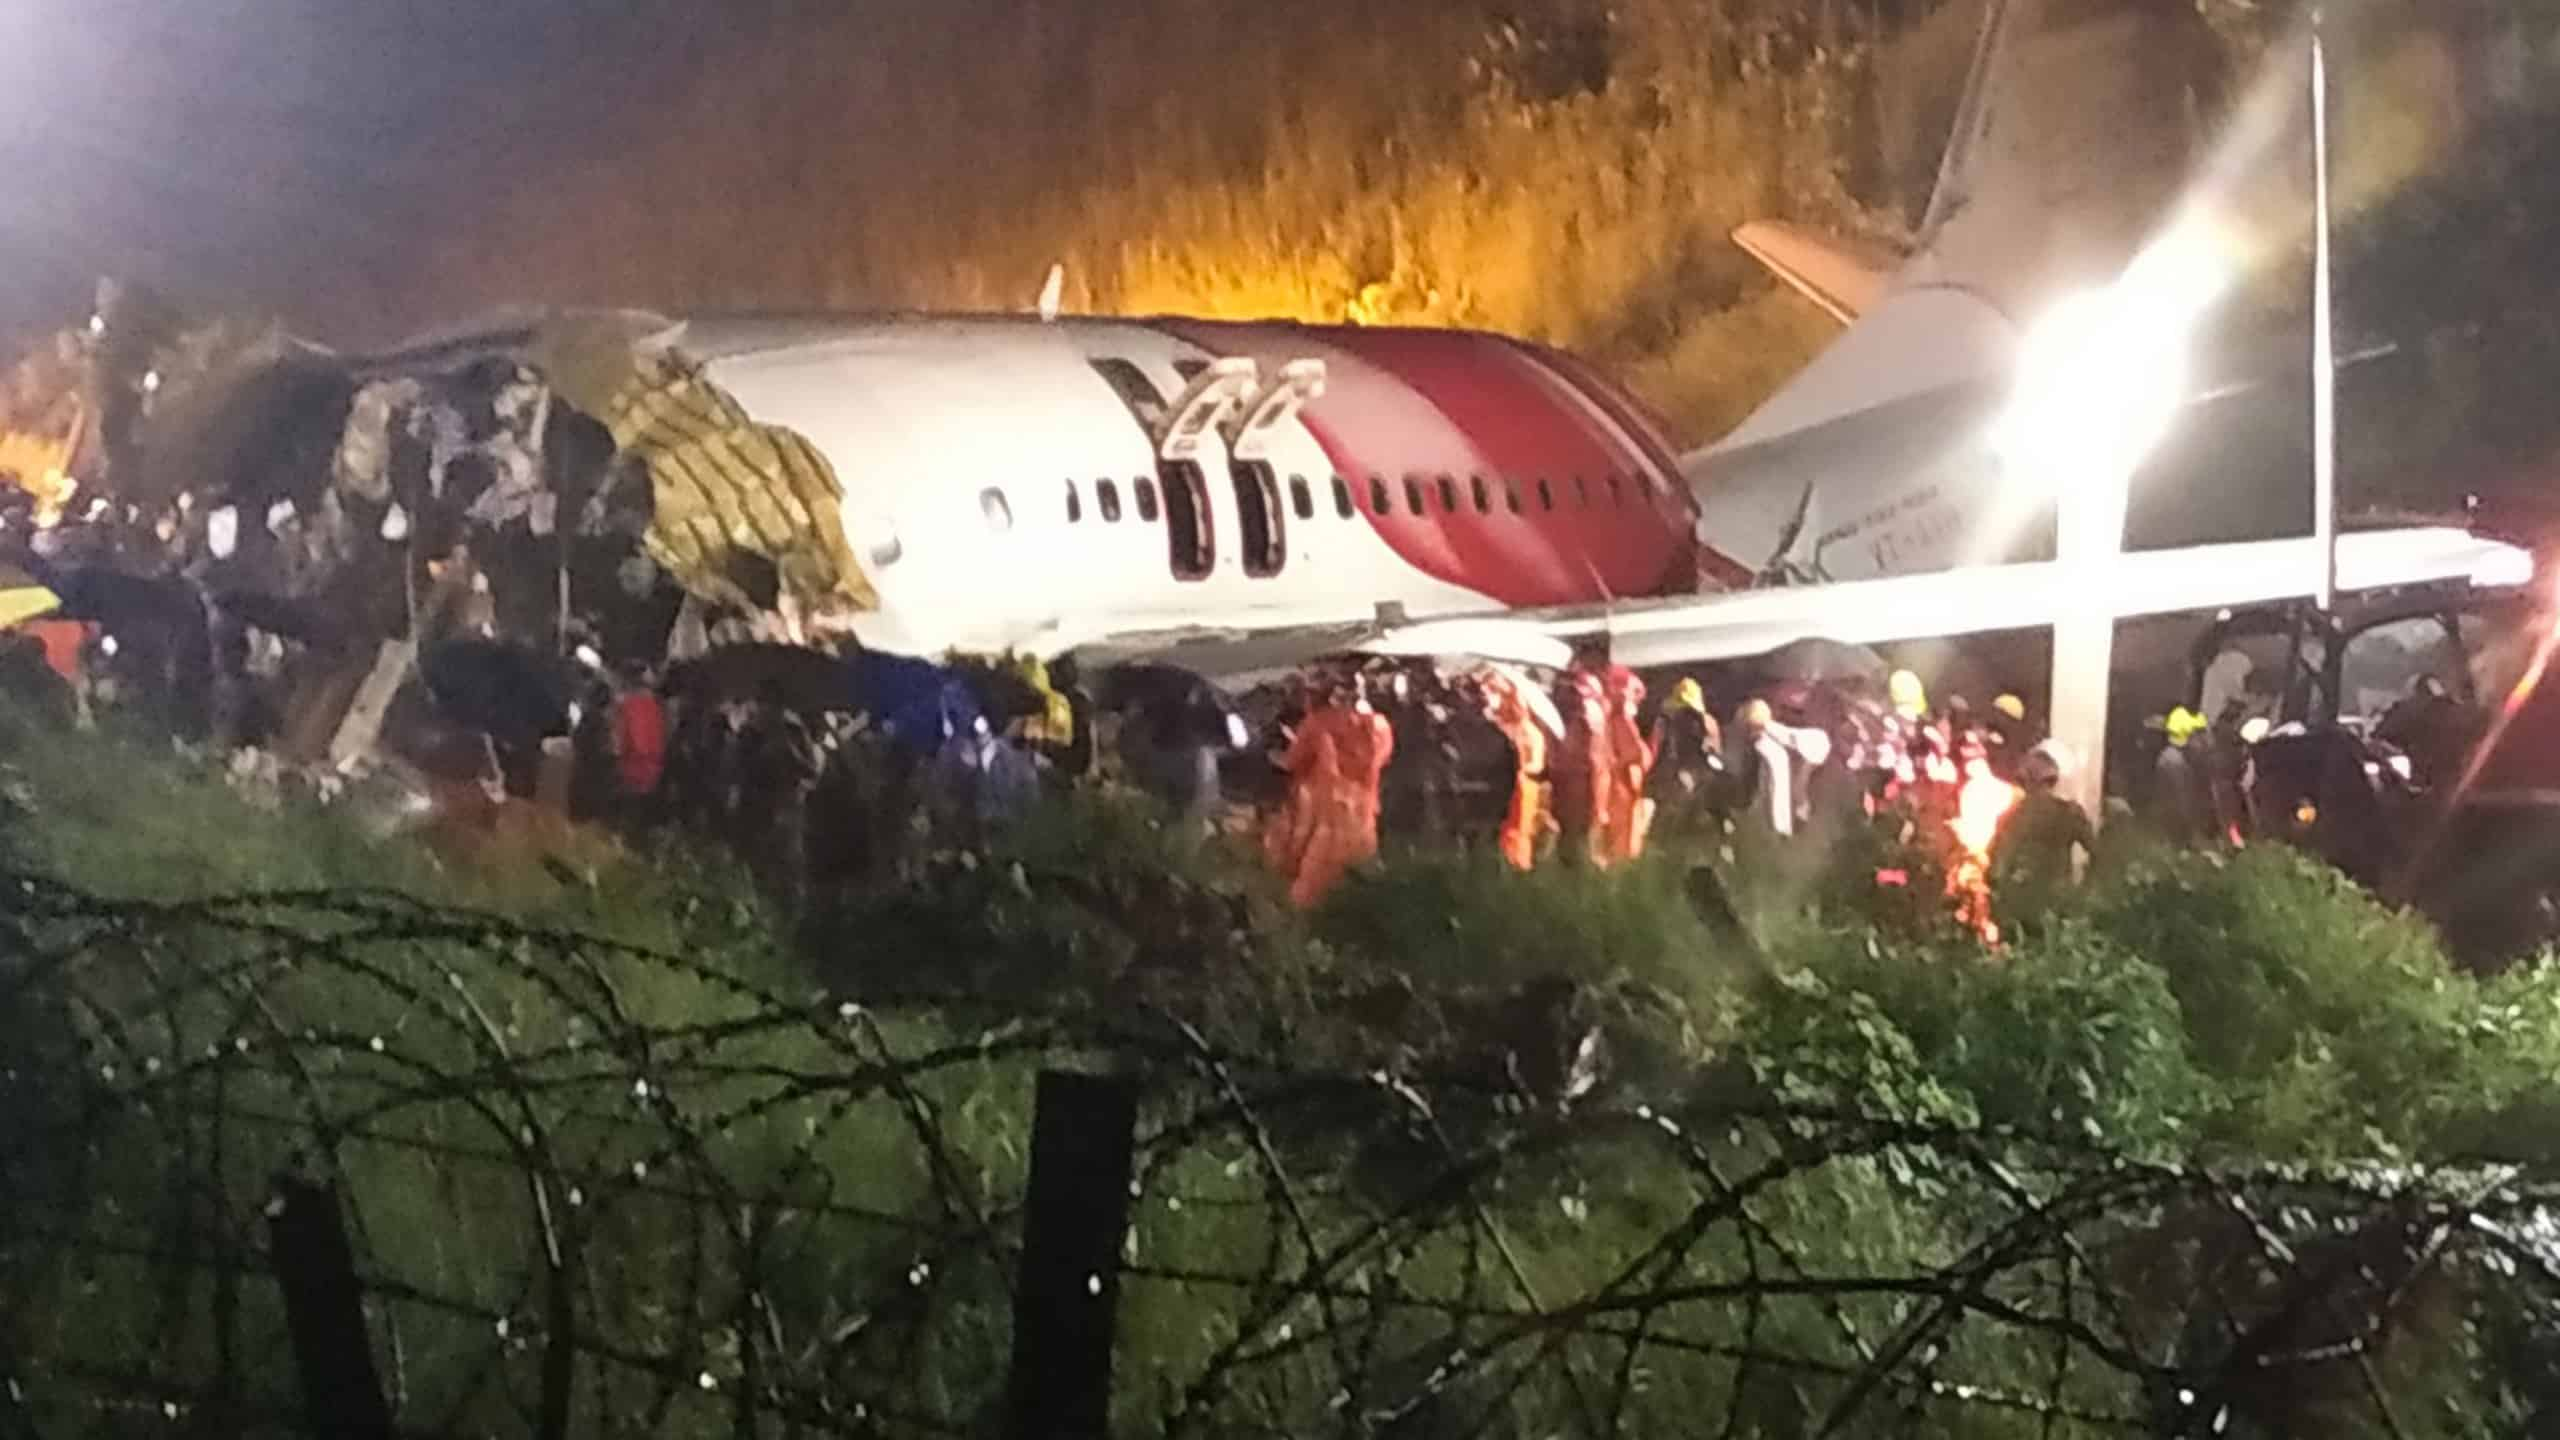 Air India Express Flight With 190 People On Board Skidded Off A Runway